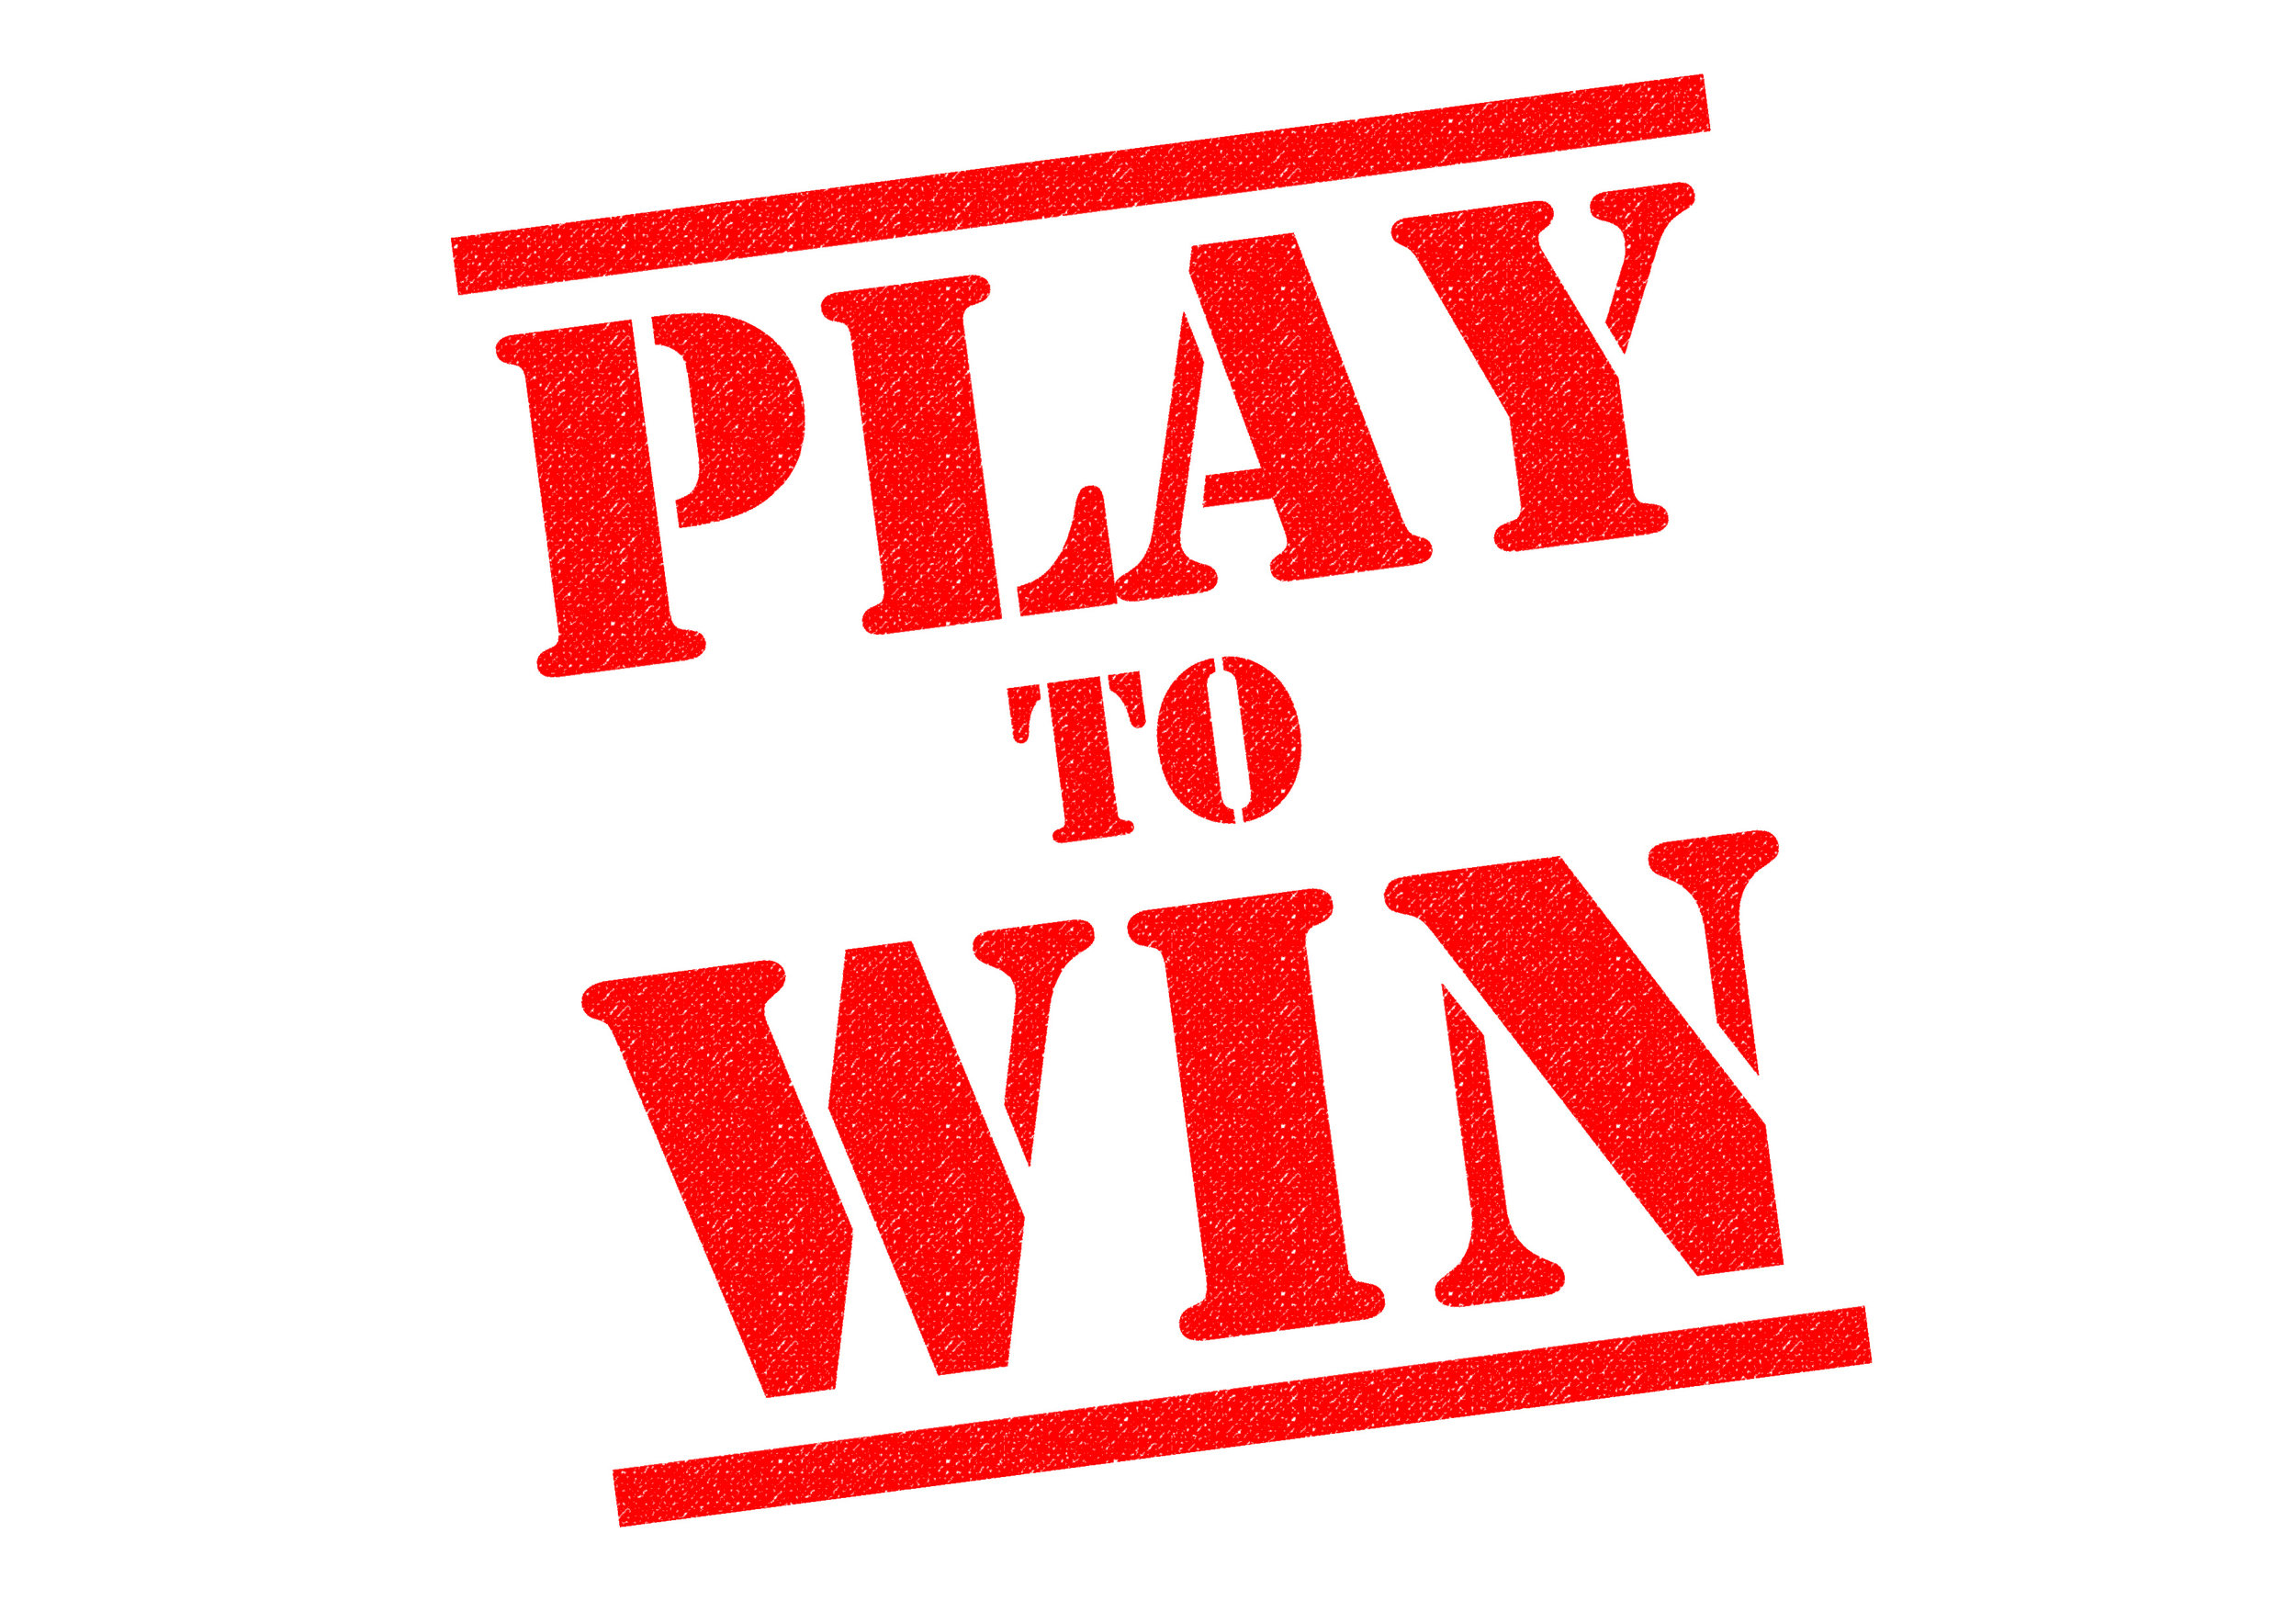 - There will be over 5 titles available to be won through our Play-to-Win program this year!